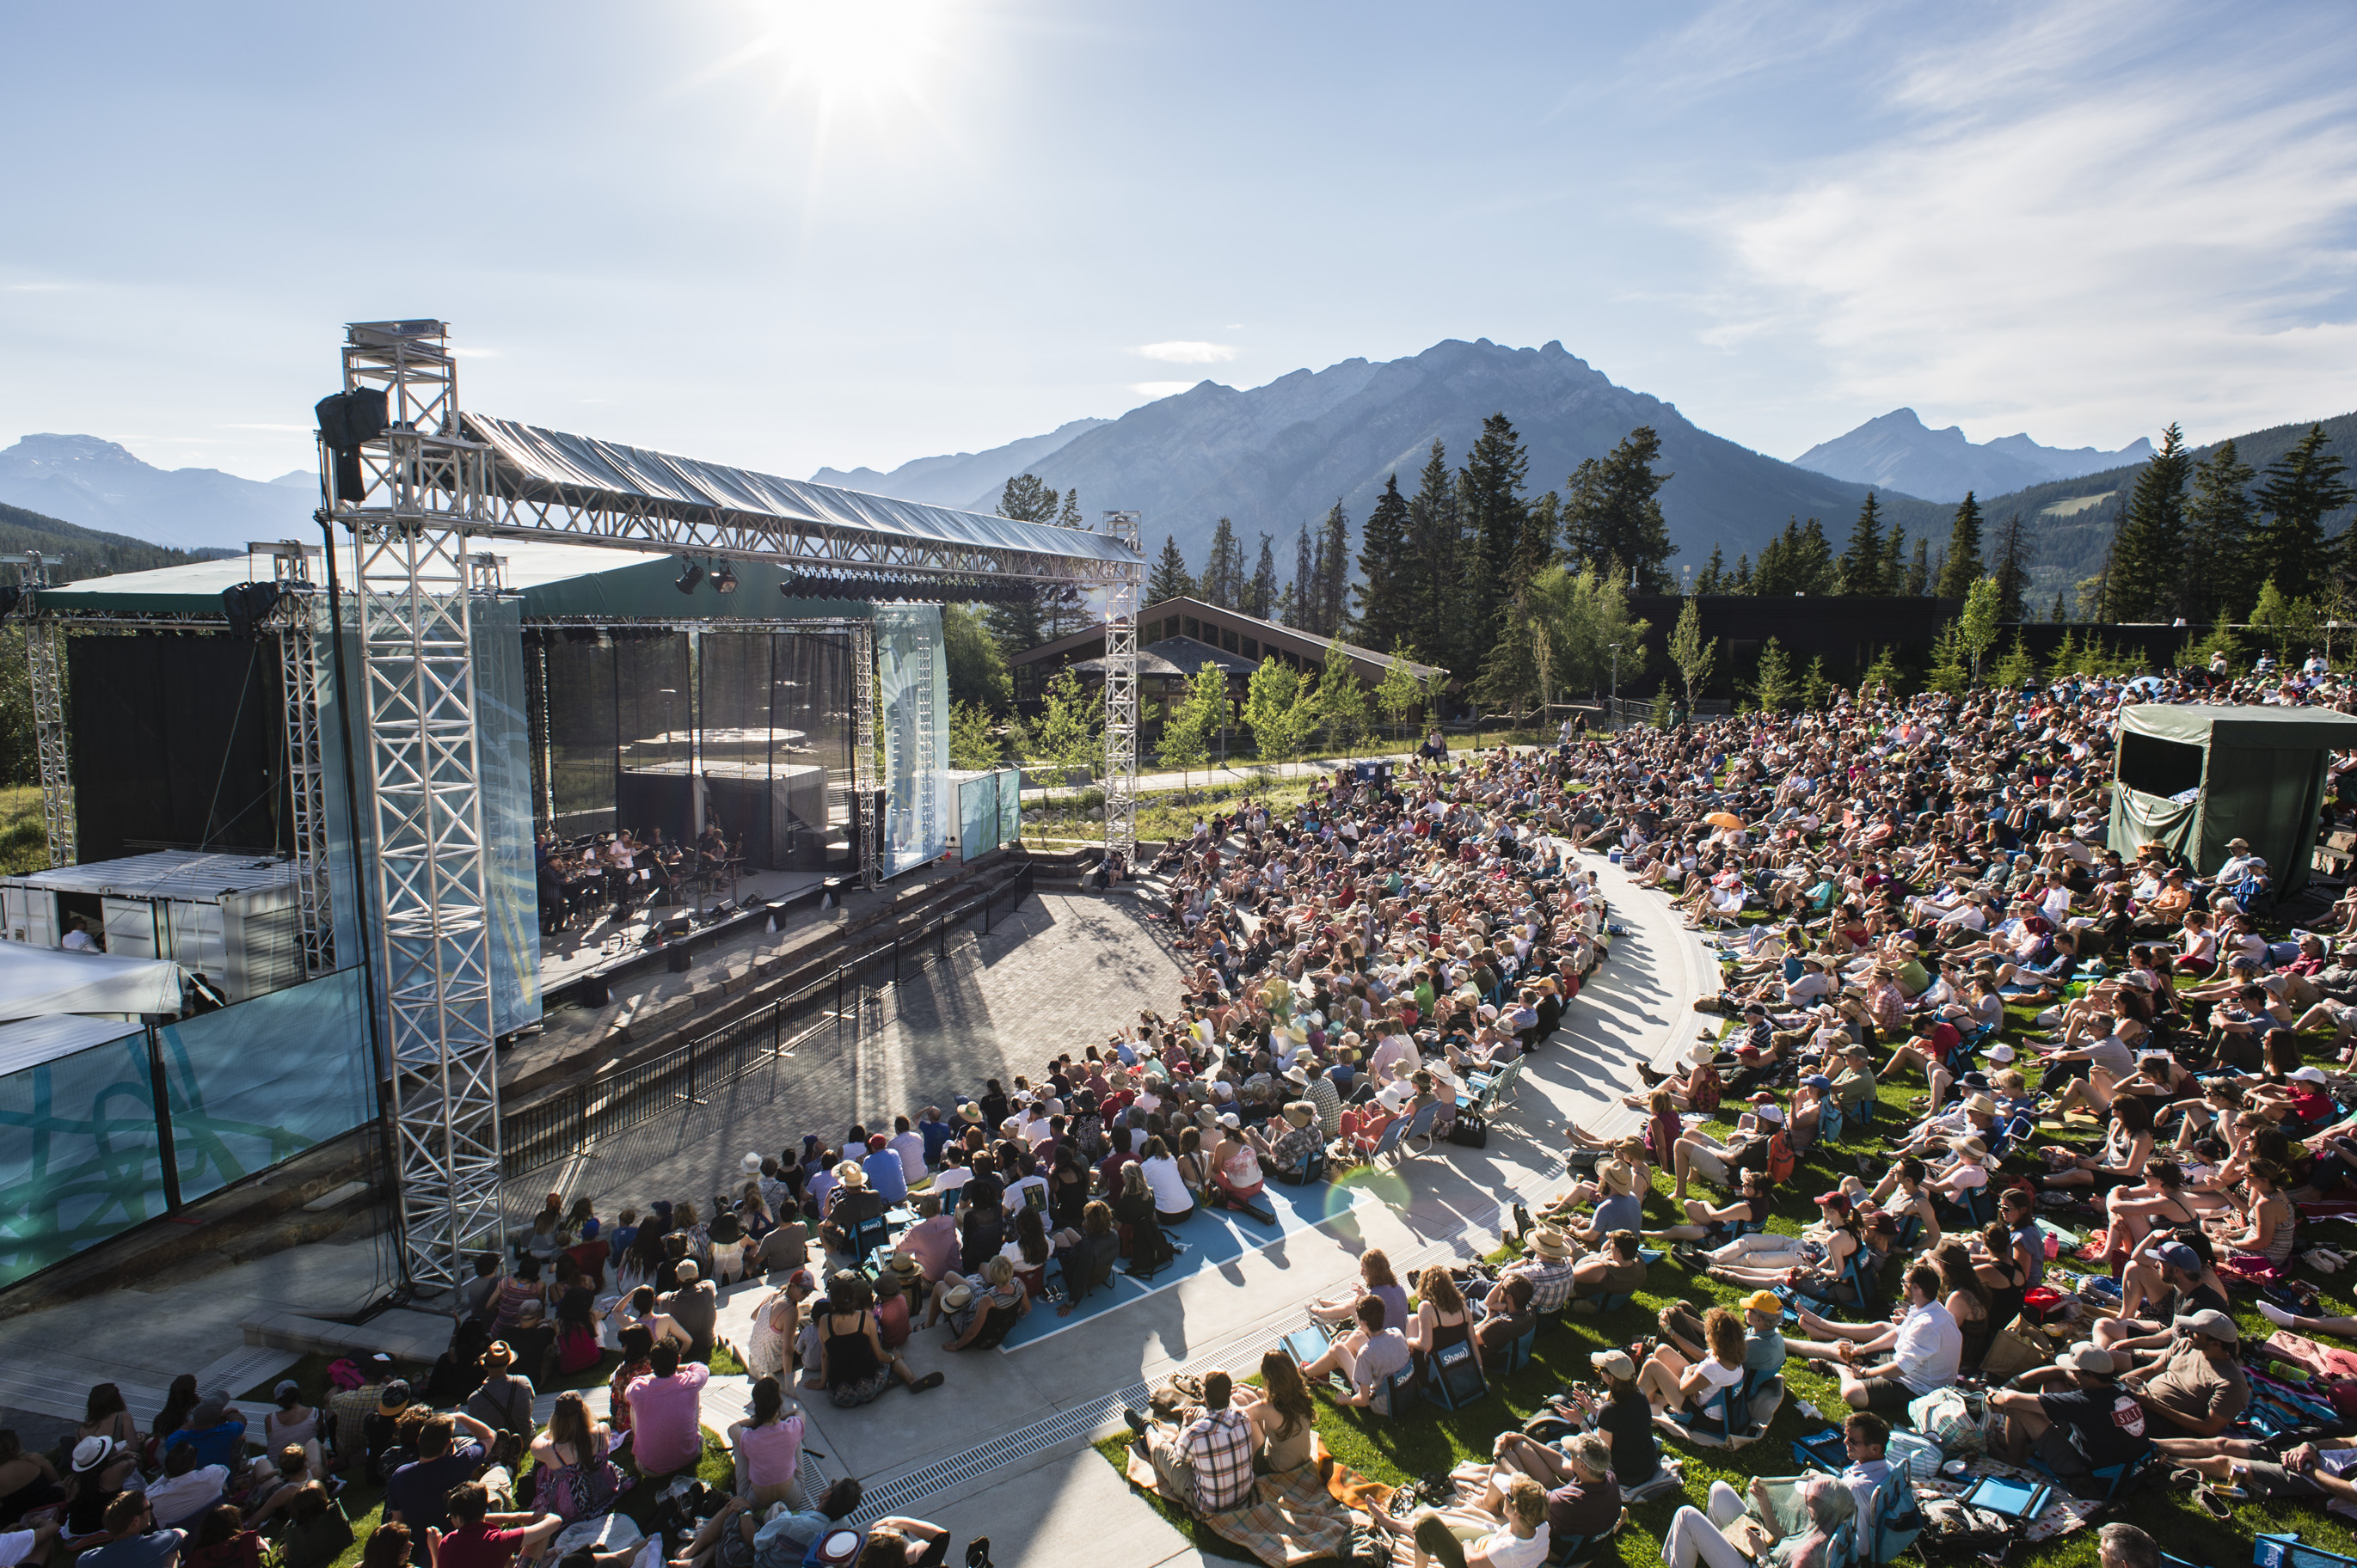 Shaw Amphitheatre crowd on a summer day.